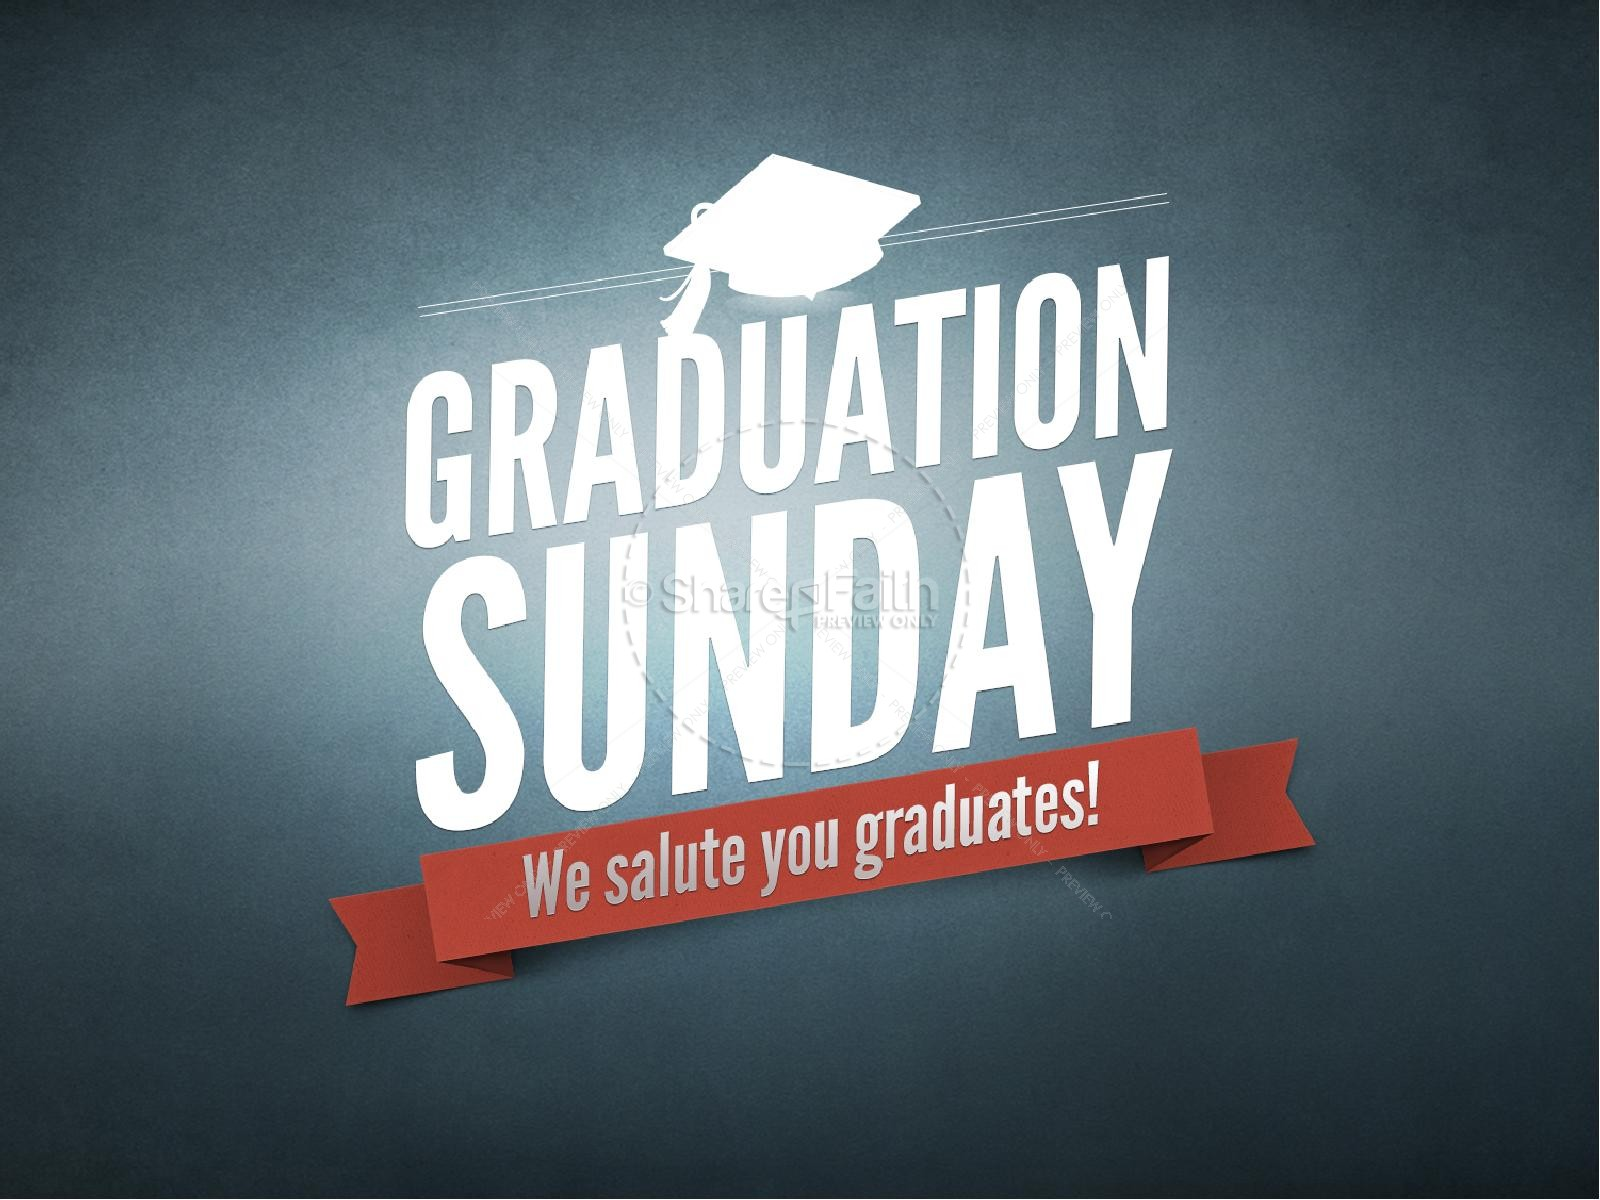 Graduation Sunday PowerPoint Slideshows | slide 1